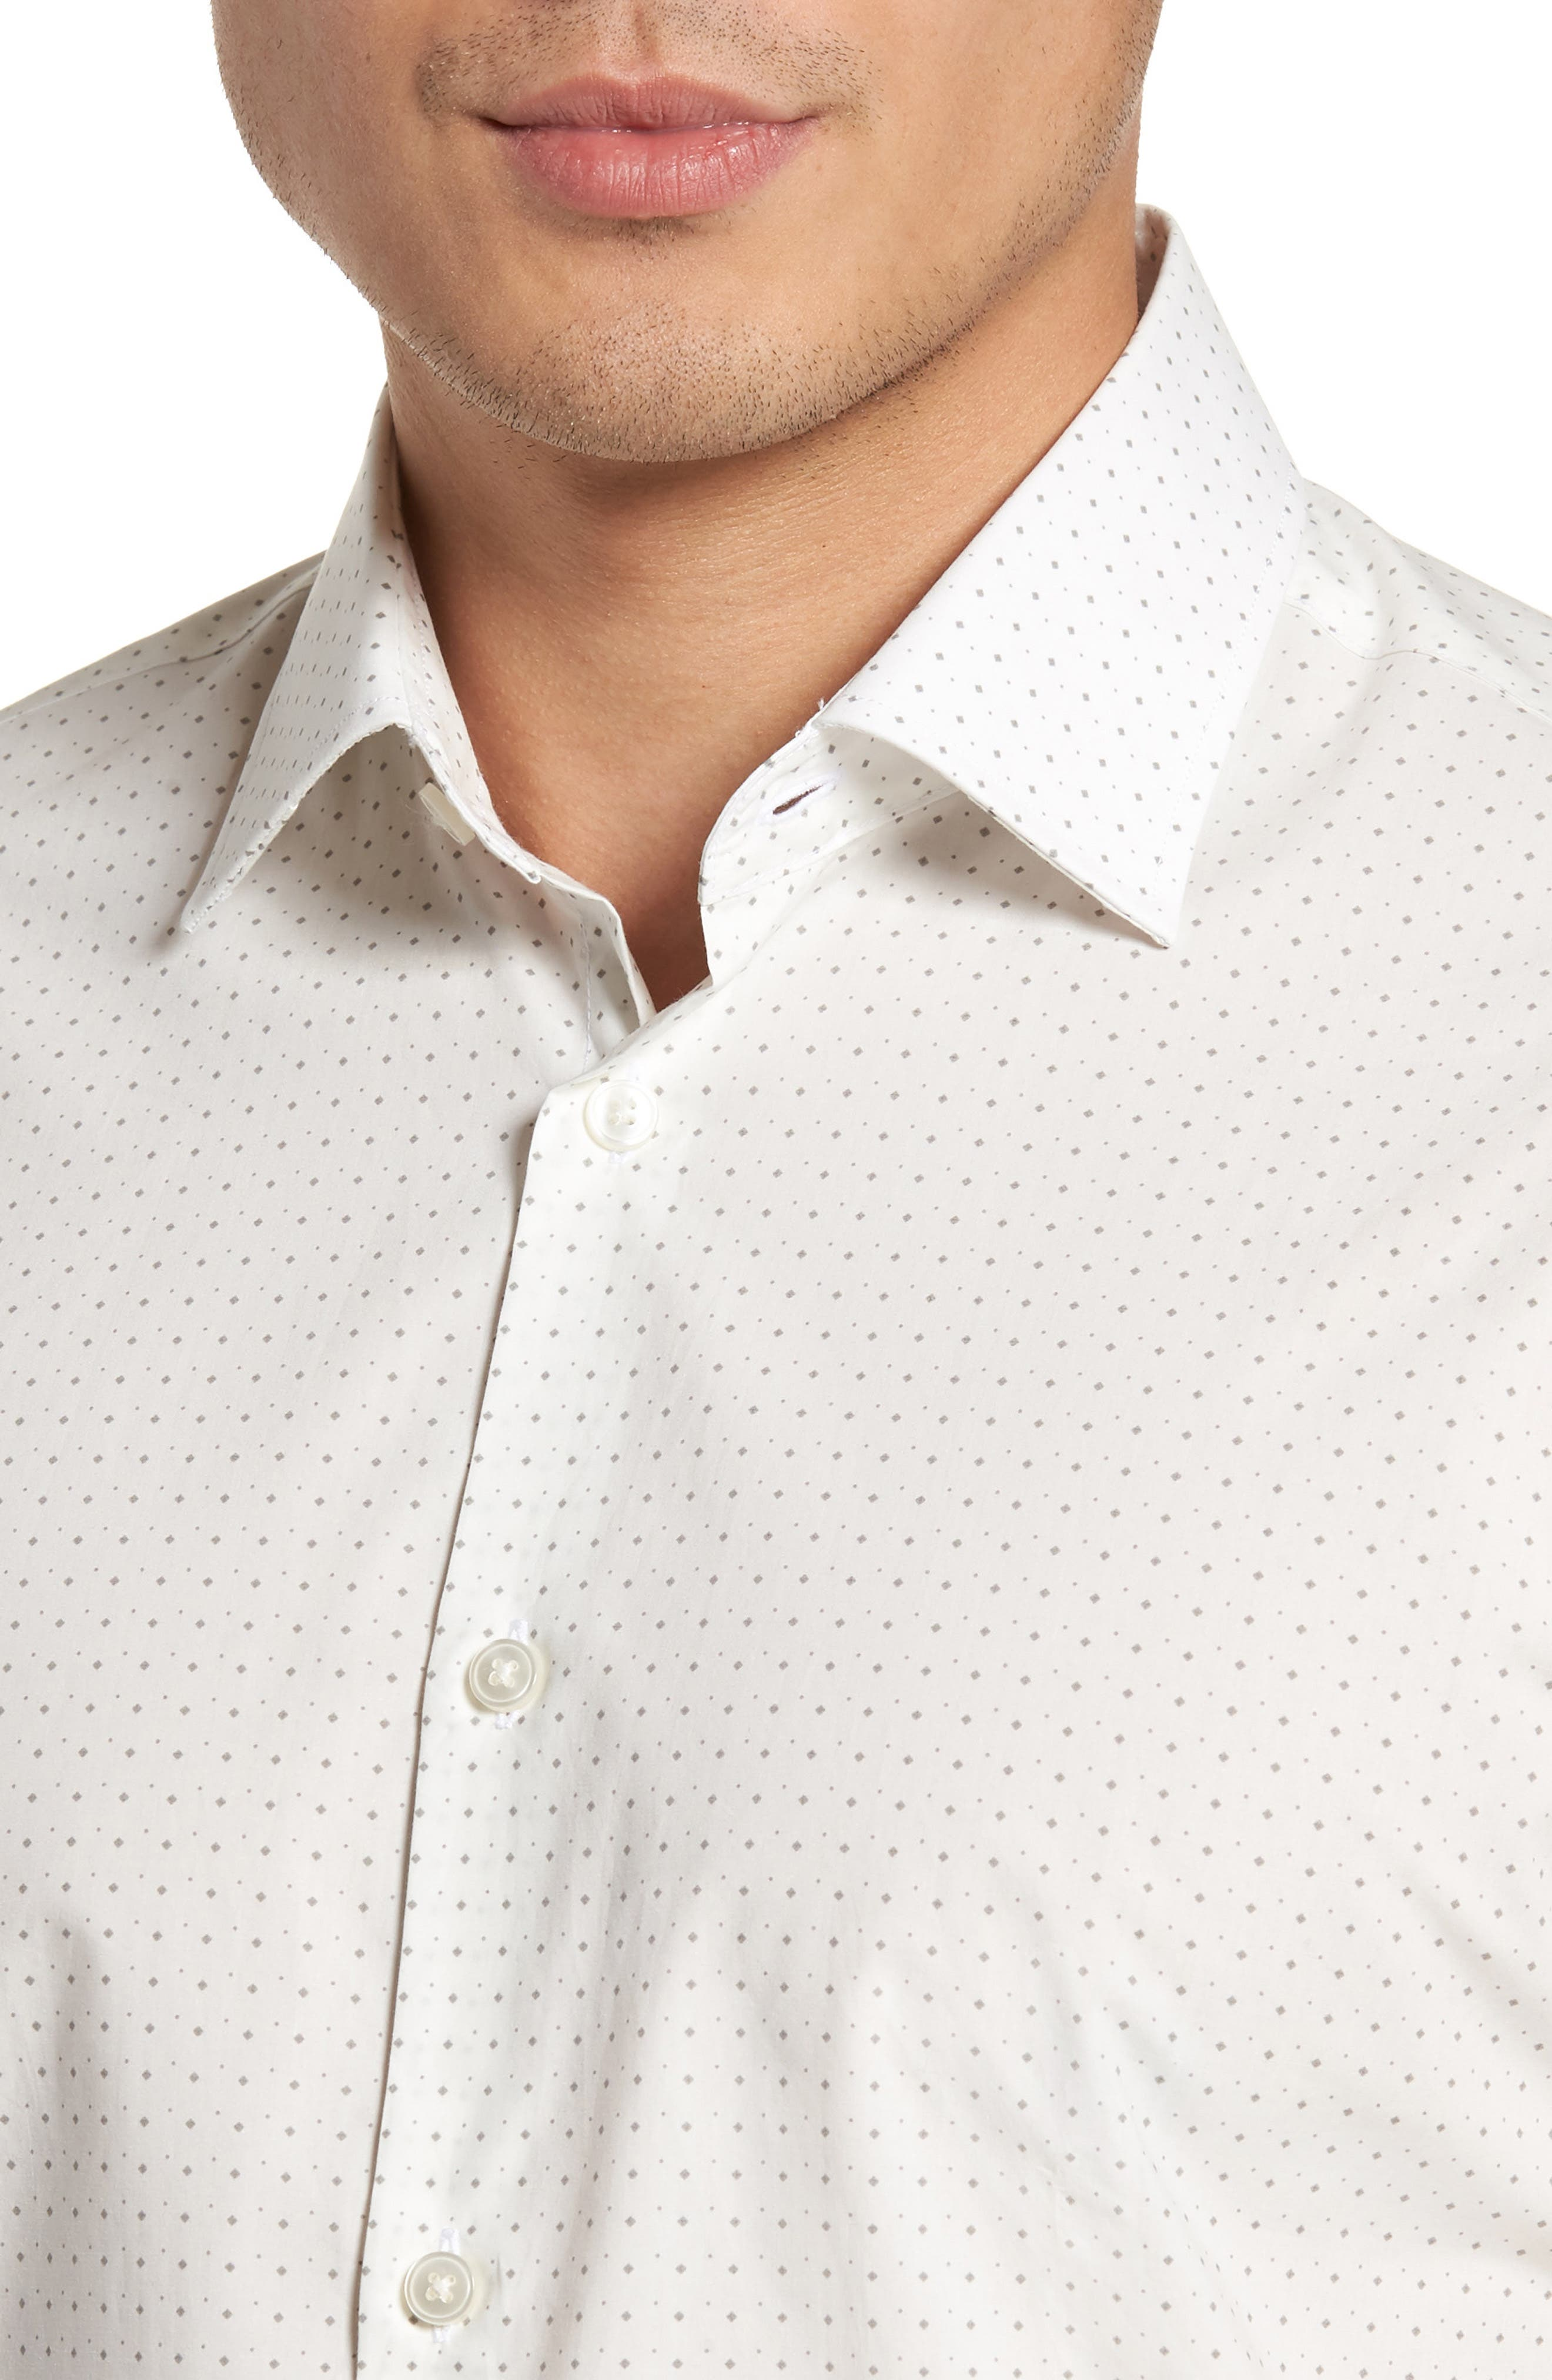 Regular Fit Diamond Dress Shirt,                             Alternate thumbnail 2, color,                             Griffin Grey